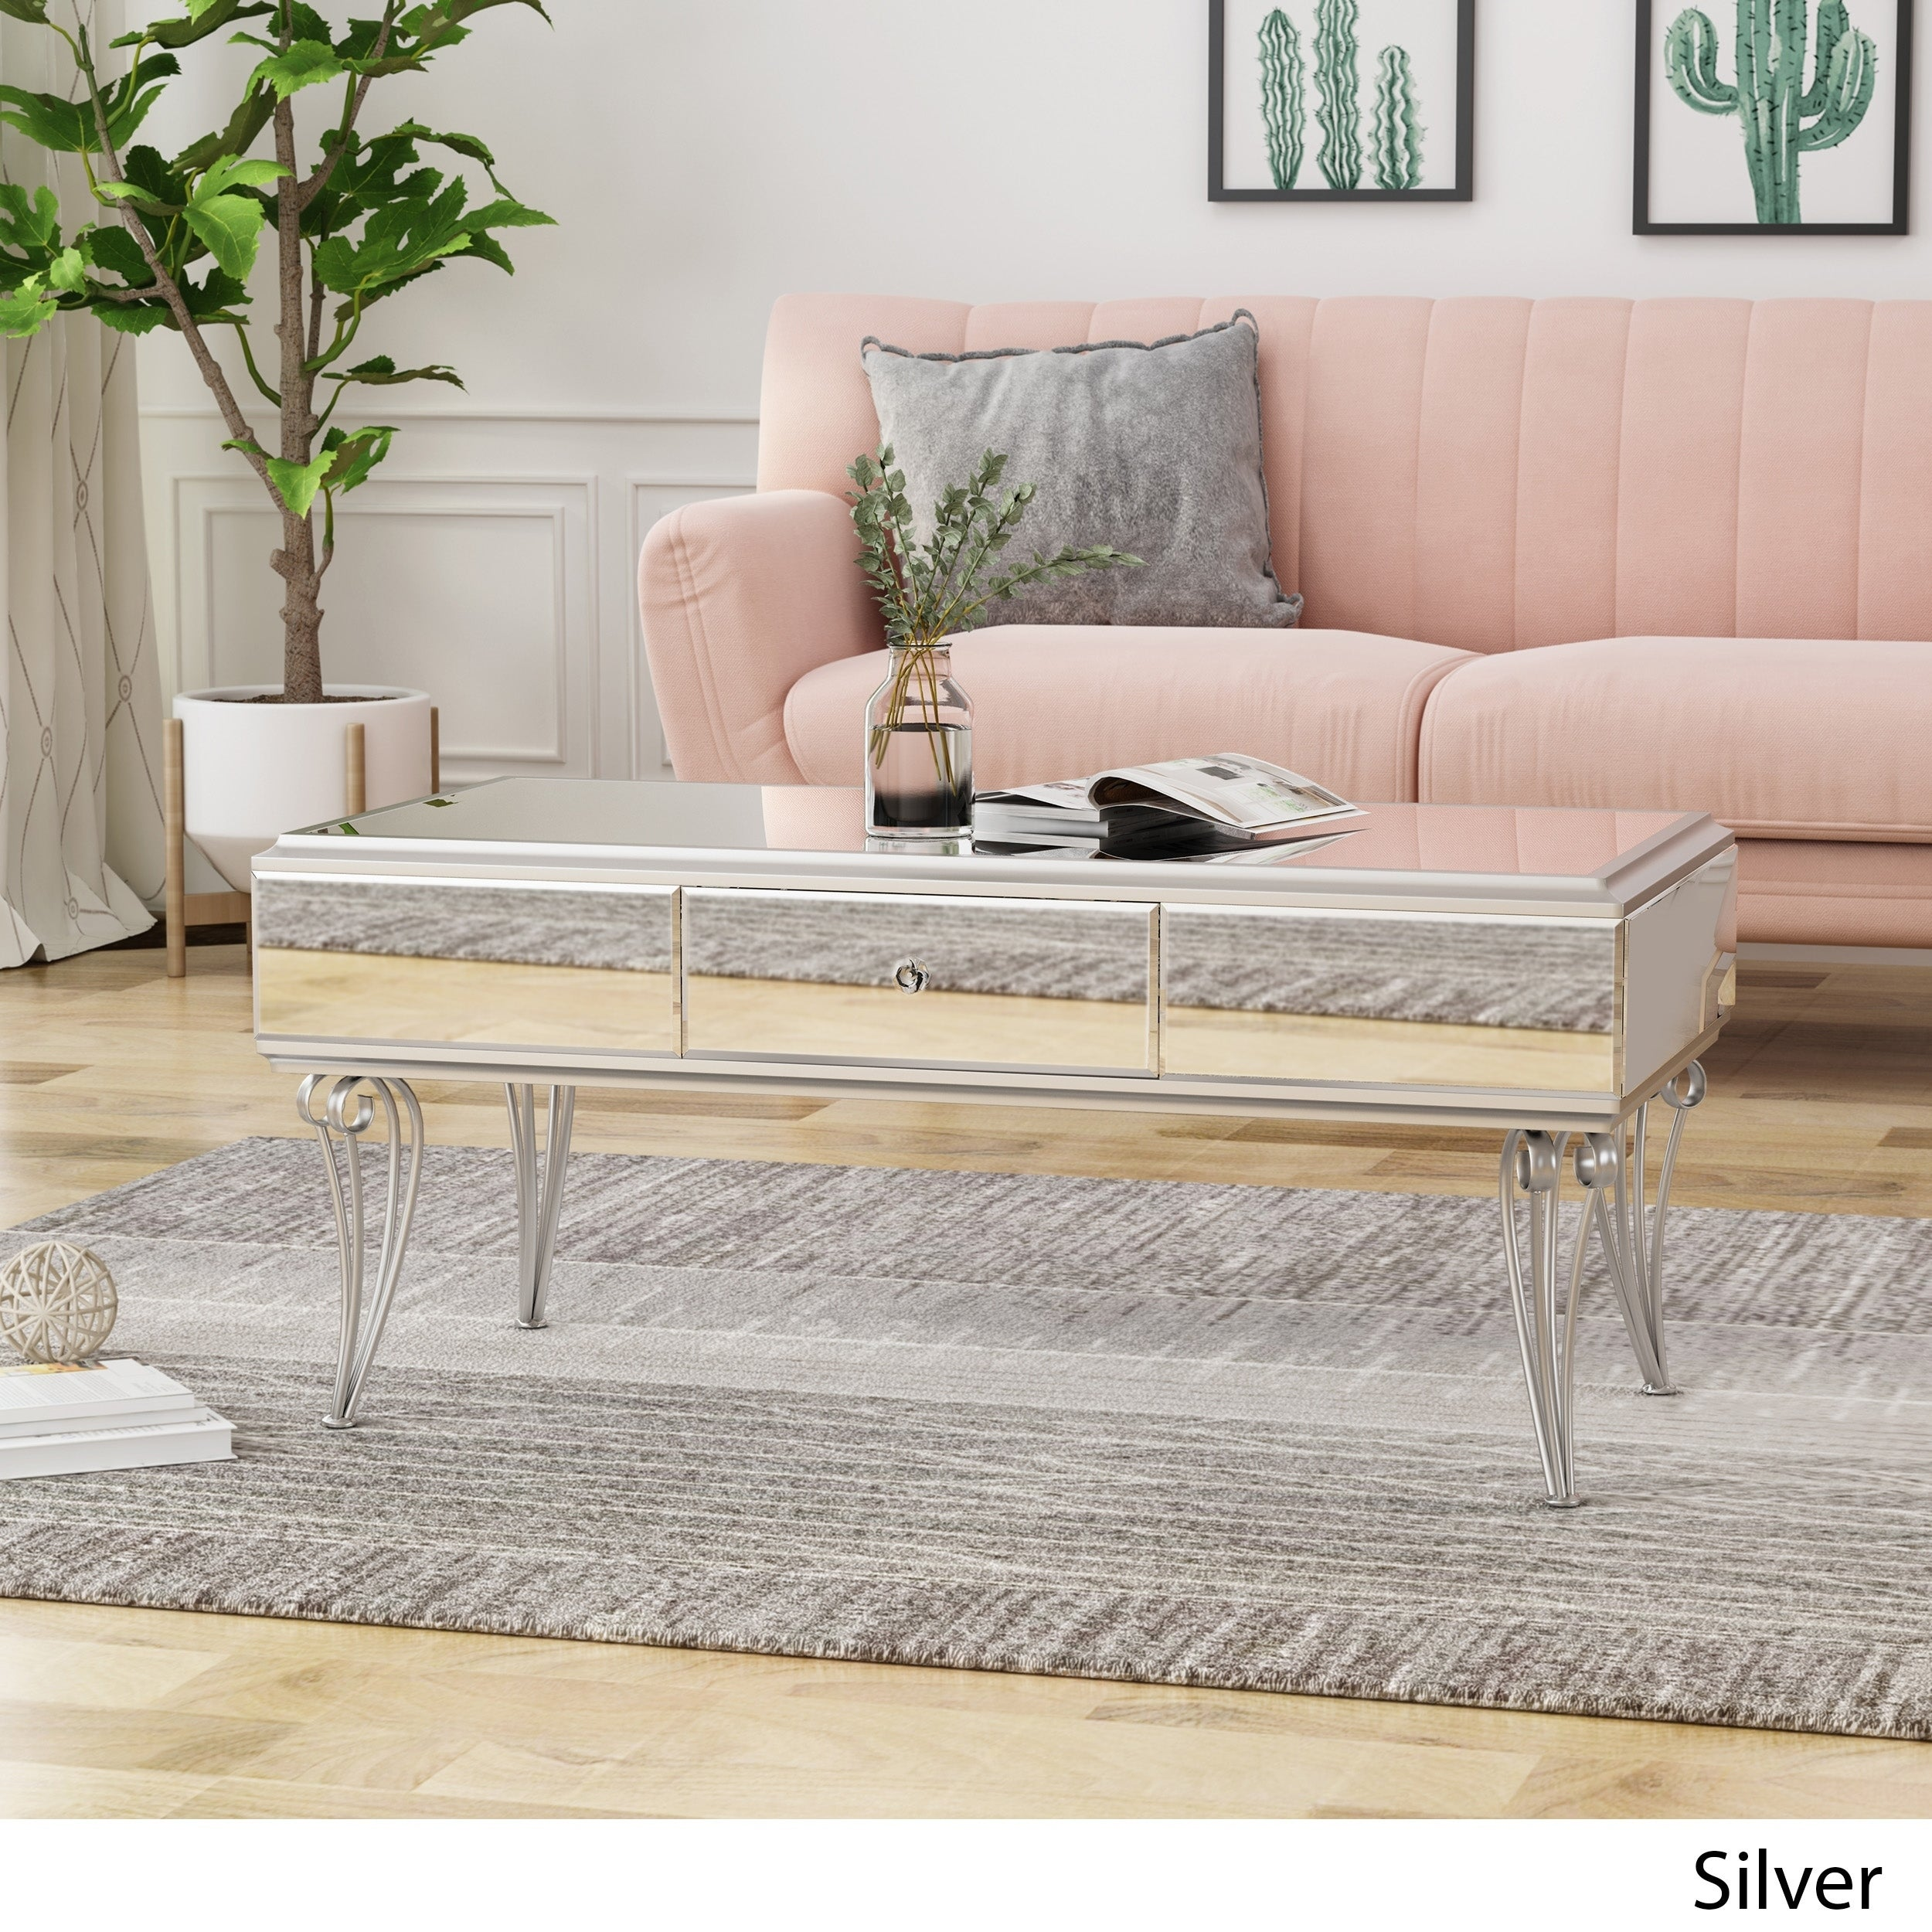 Belvidere Modern Tempered Glass Mirrored Coffee Table With Drawer By Christopher Knight Home Overstock 24115201 Silver